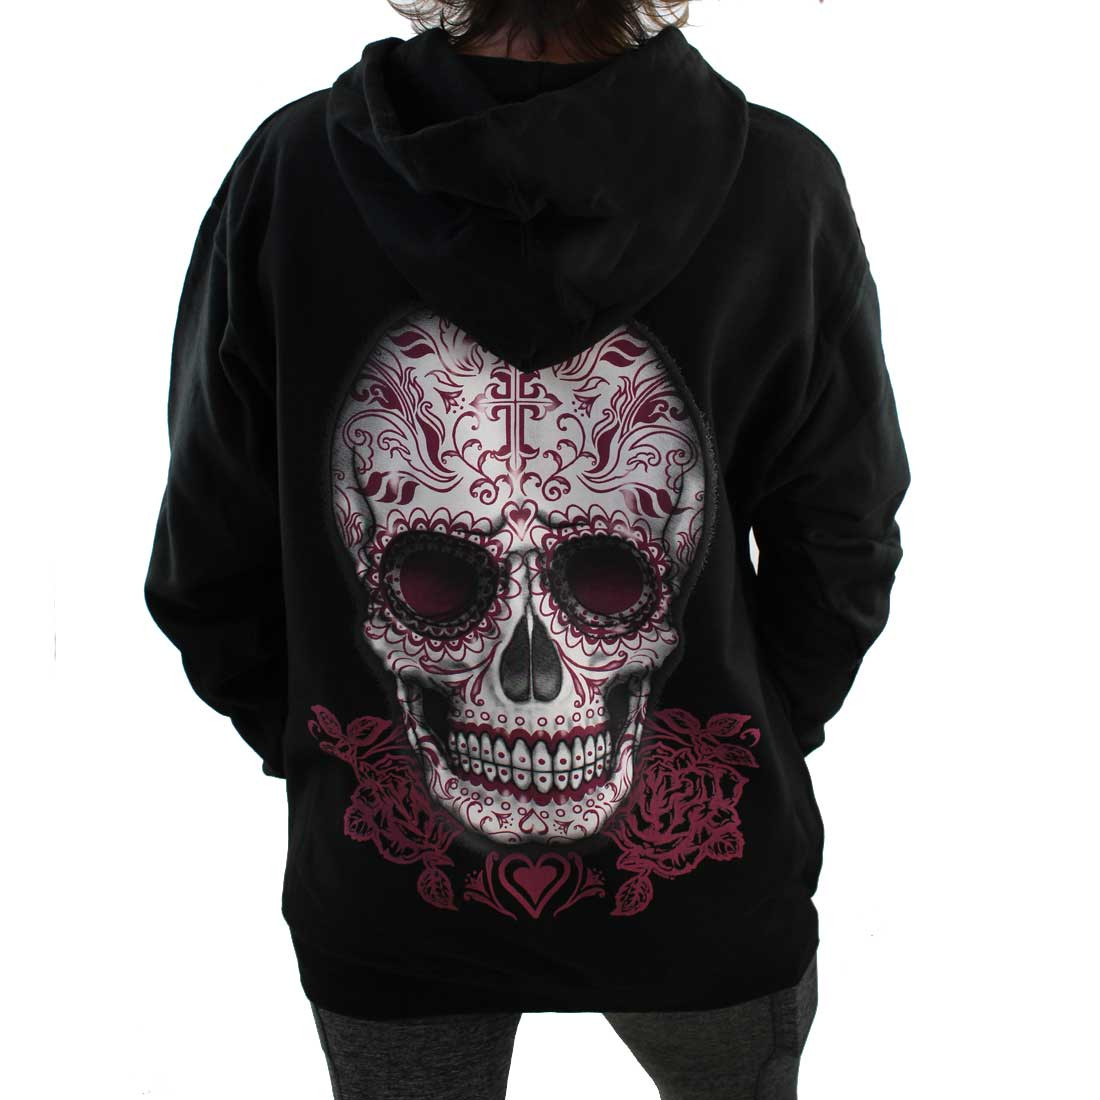 Black Fleece Pullover Hoodie Sweatshirt Day of the Dead Skull and Roses